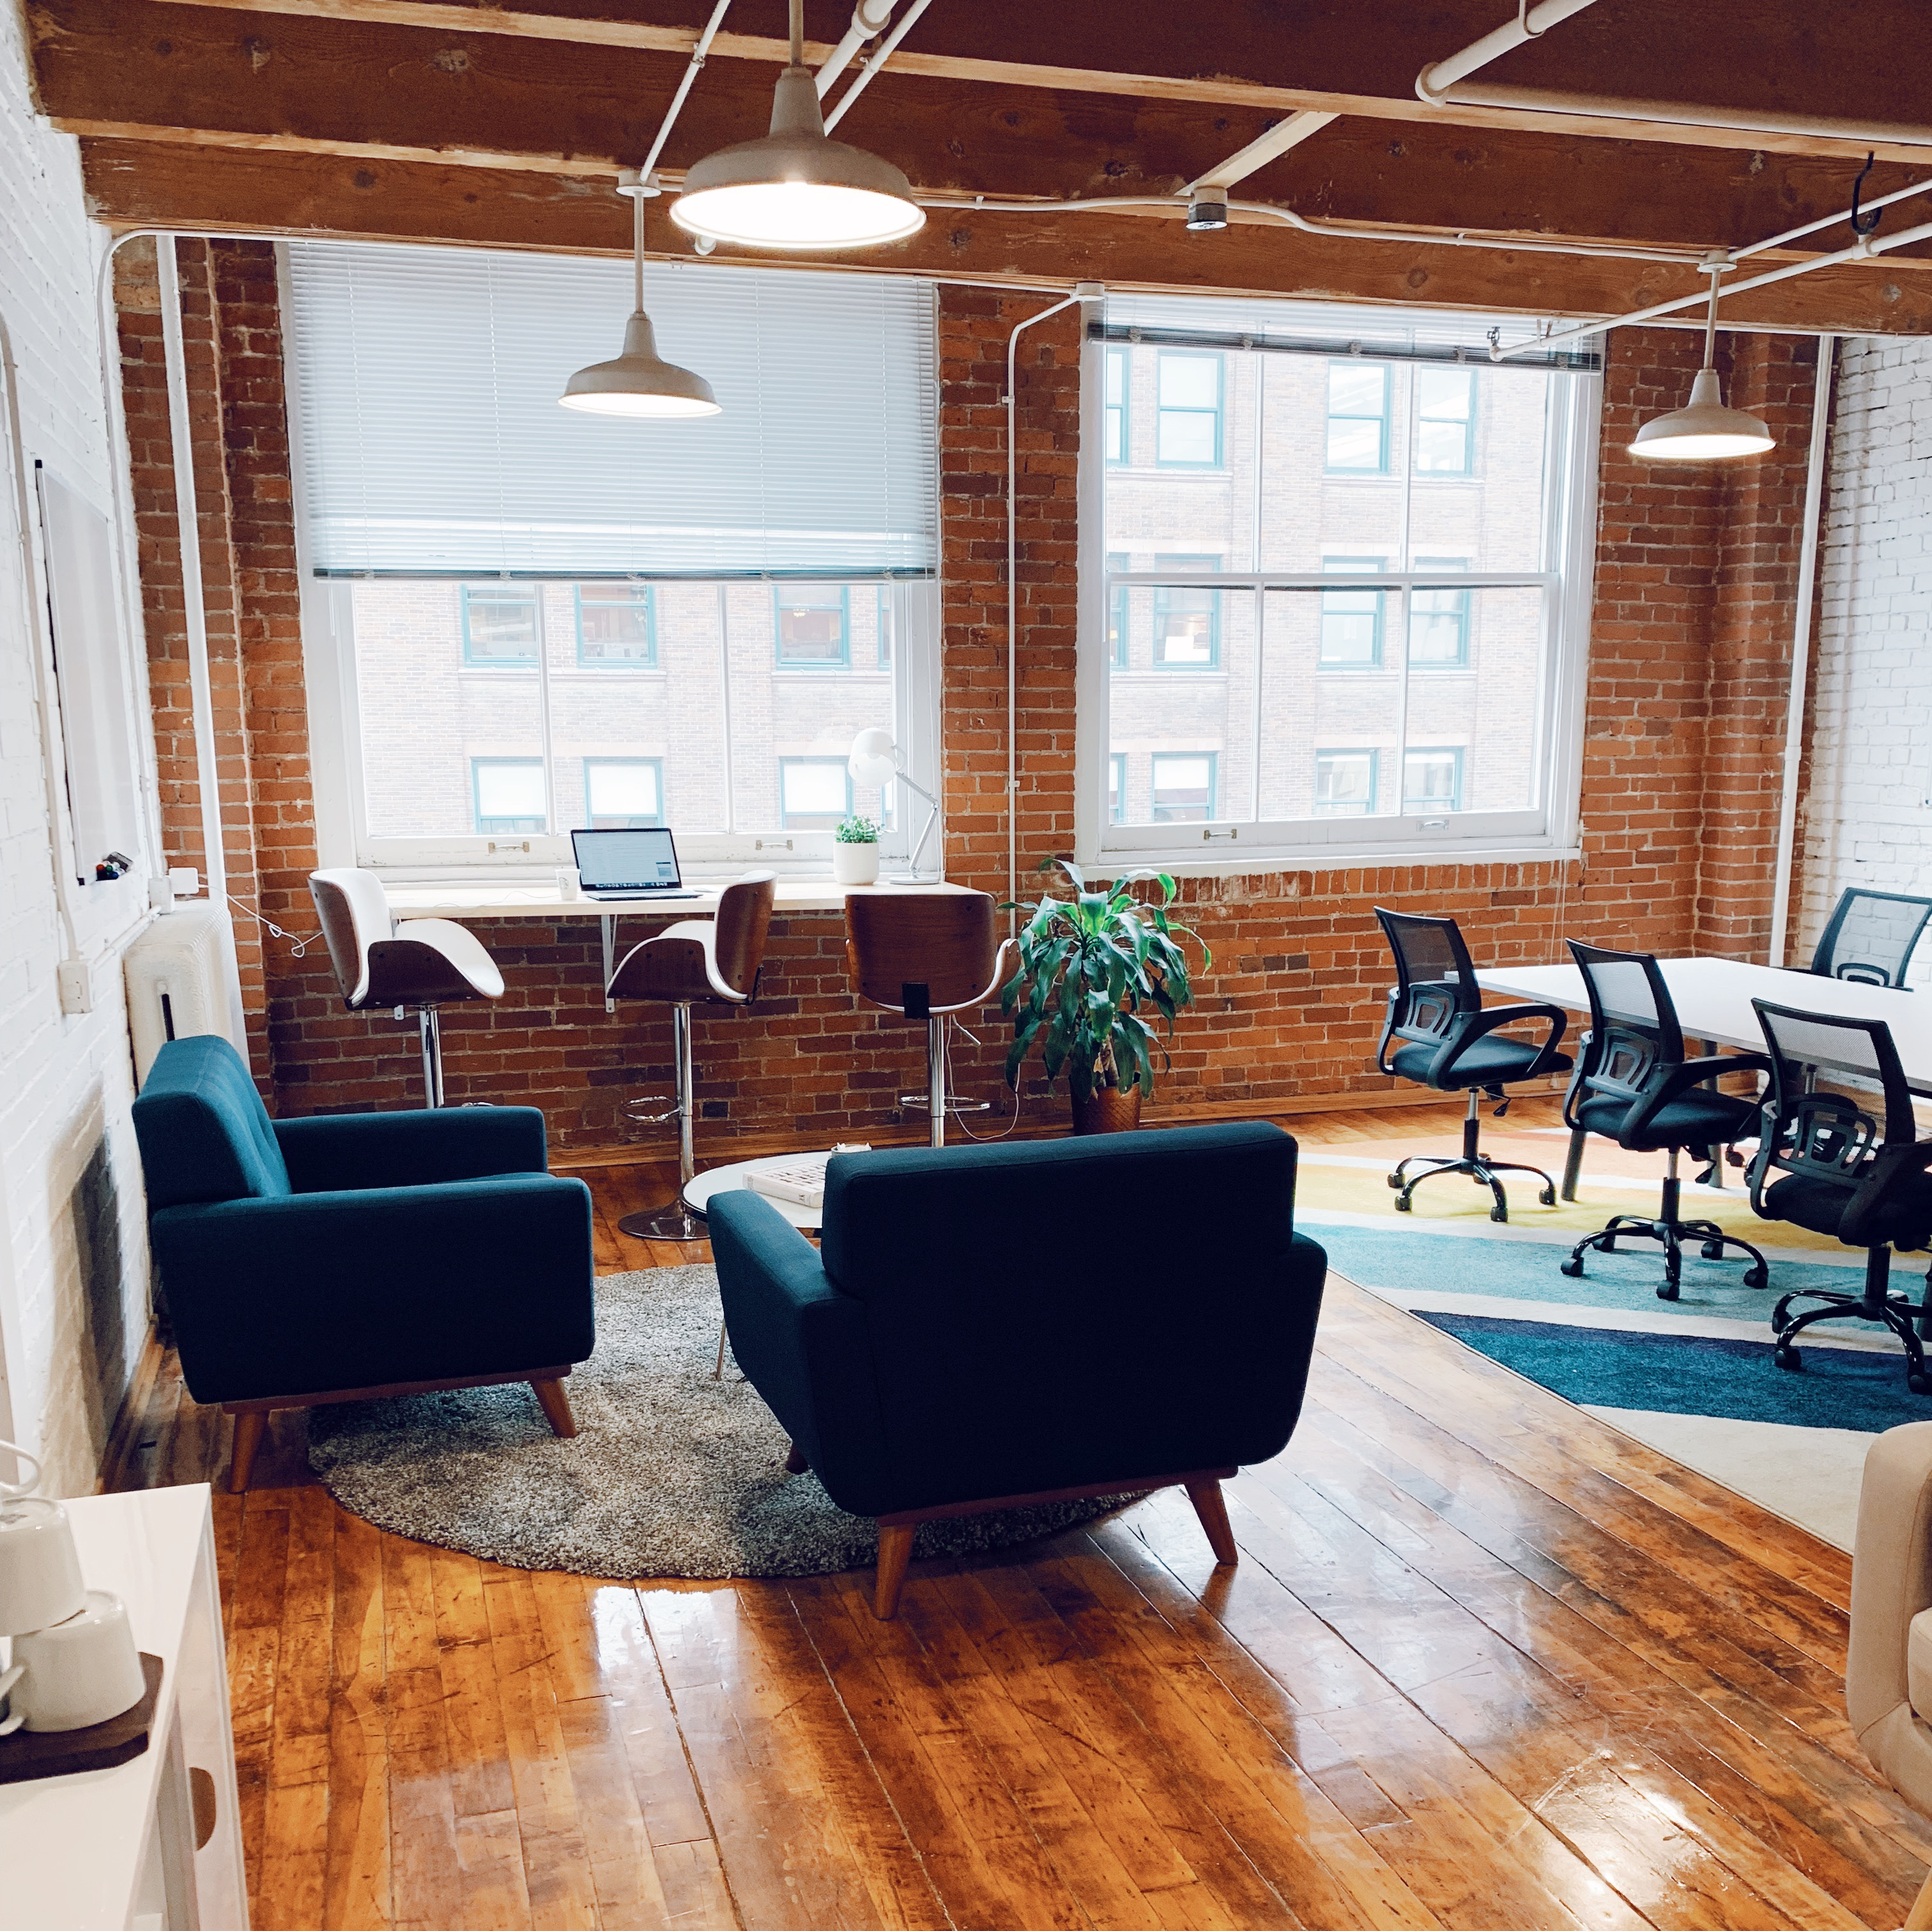 Beautiful mid-century office space with blue chairs and hardwood floors